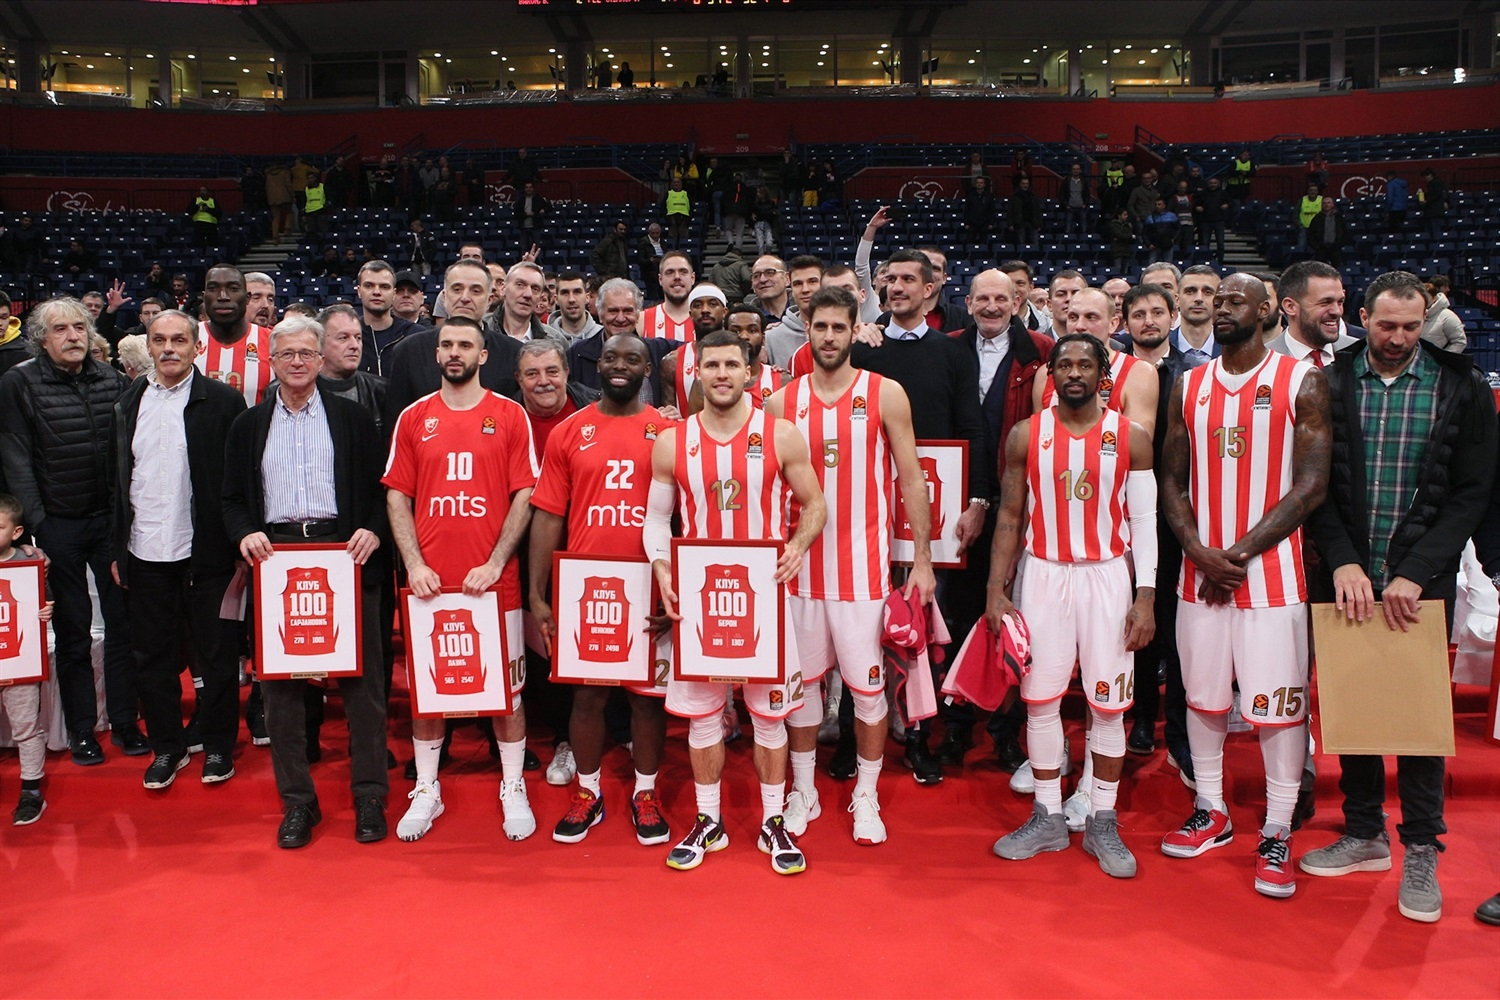 Members of 100 club - Crvena Zvezda mts Belgrade - EB19